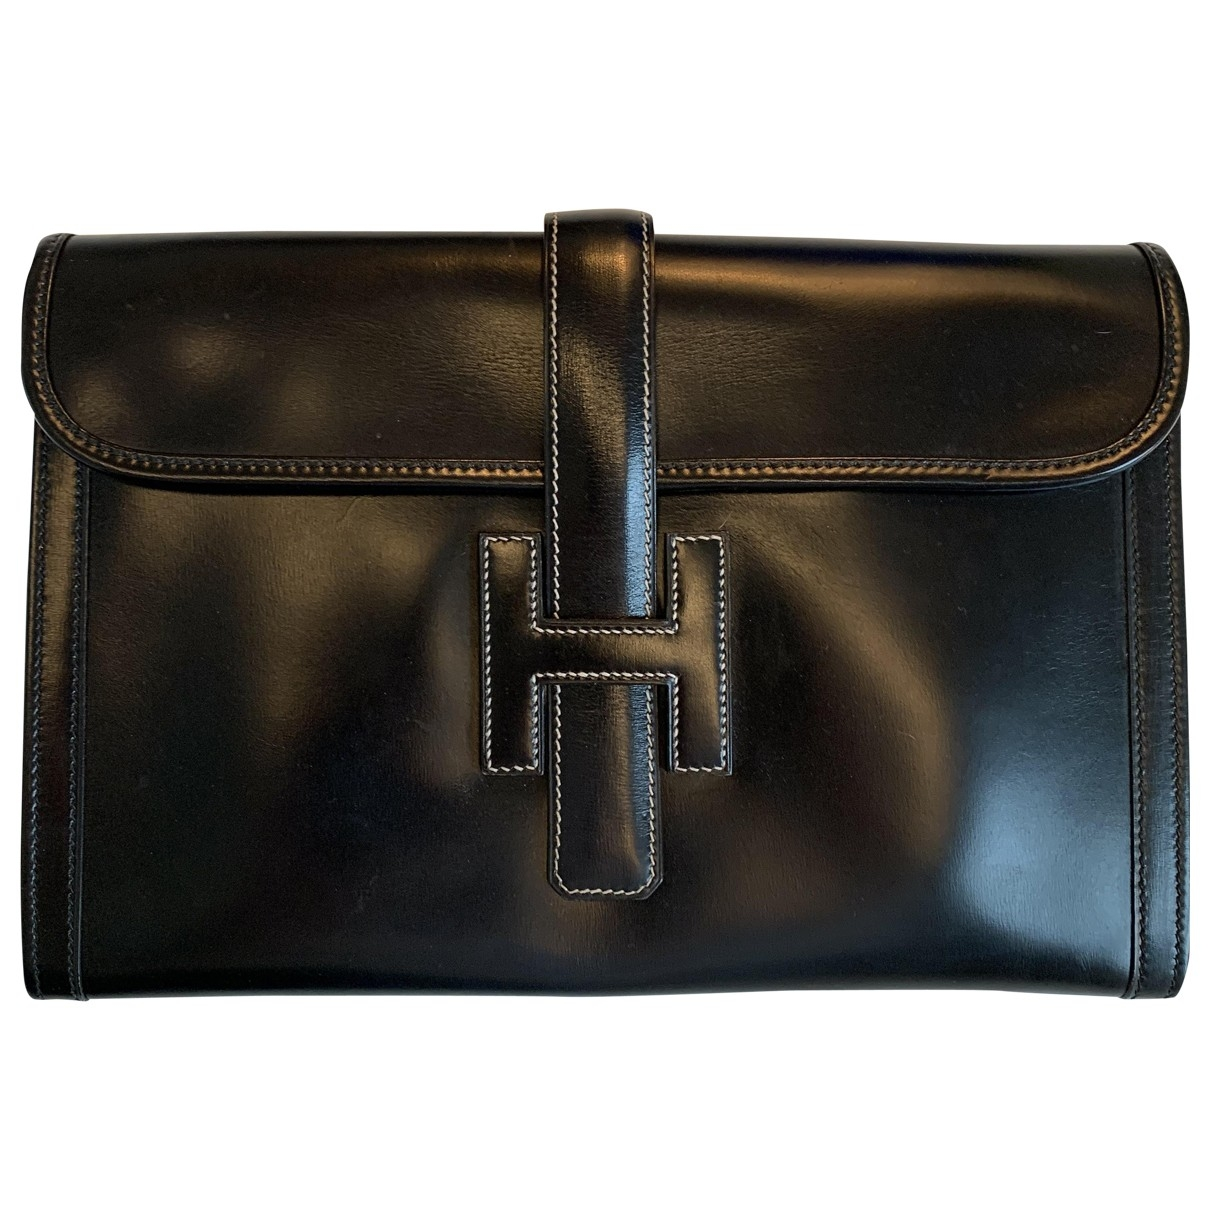 Hermès Jige Black Leather Clutch bag for Women \N